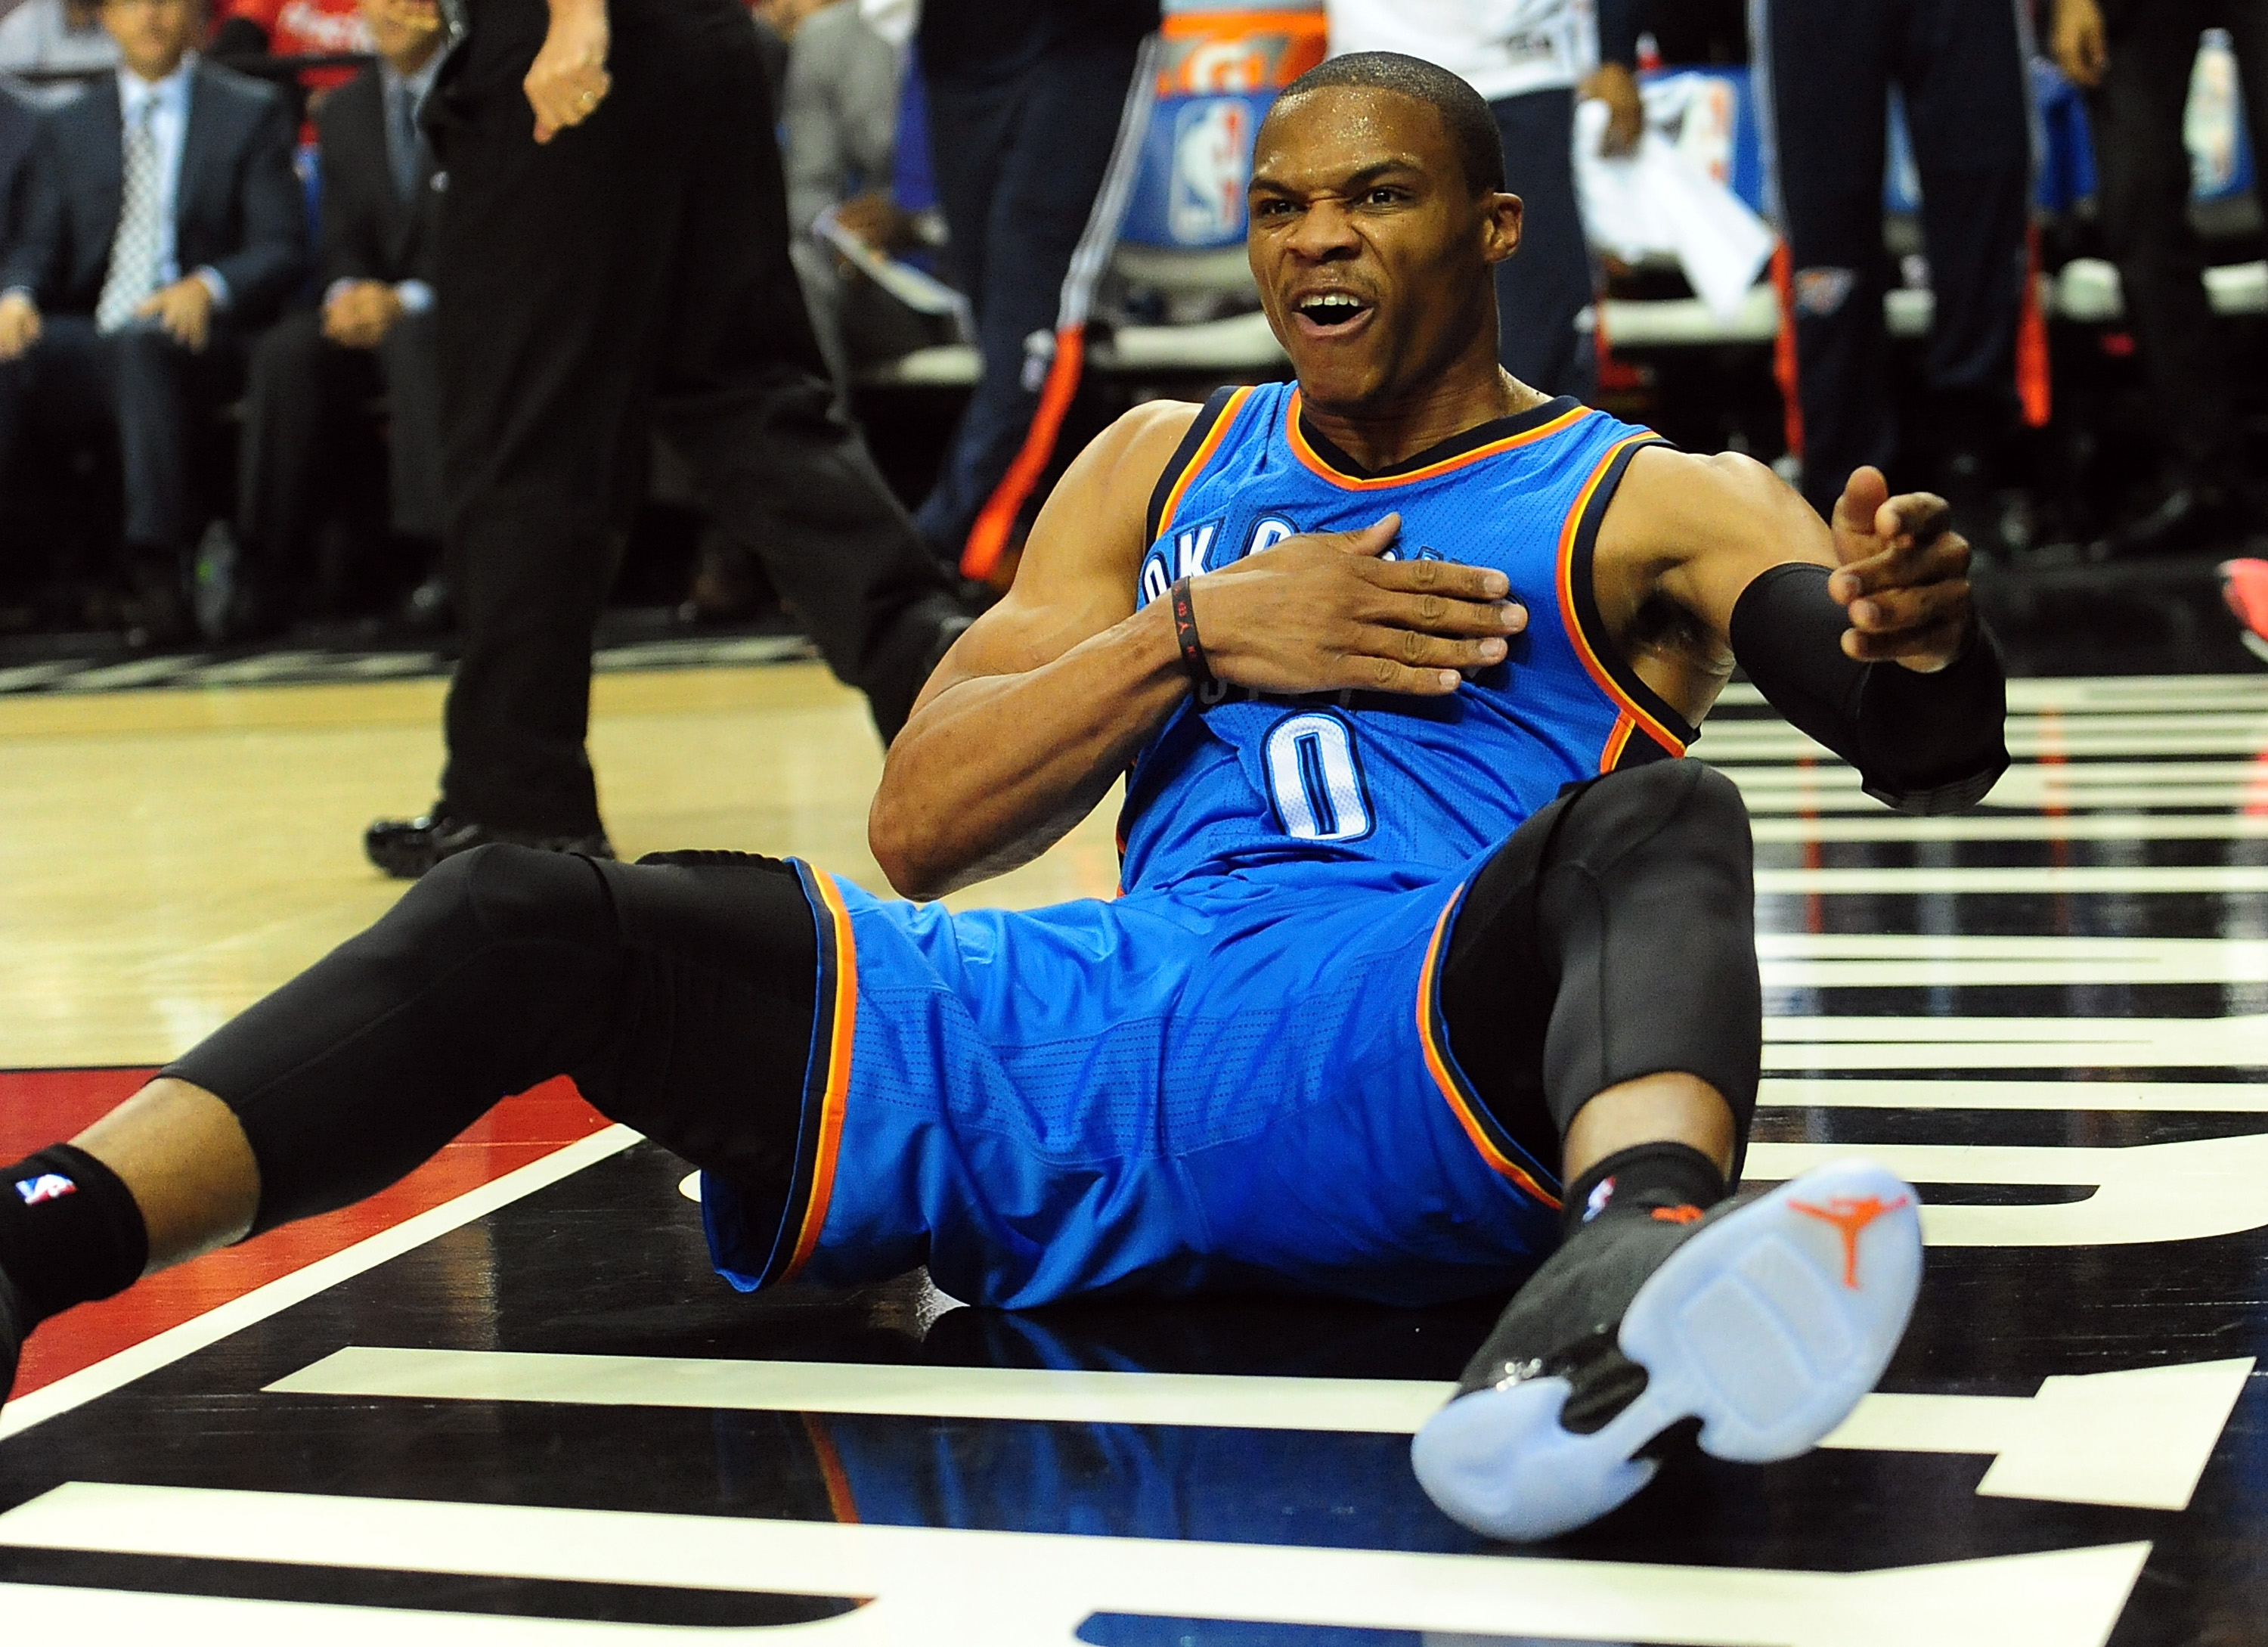 Shocker: Celtics mentioned in speculation piece about Russell Westbrook